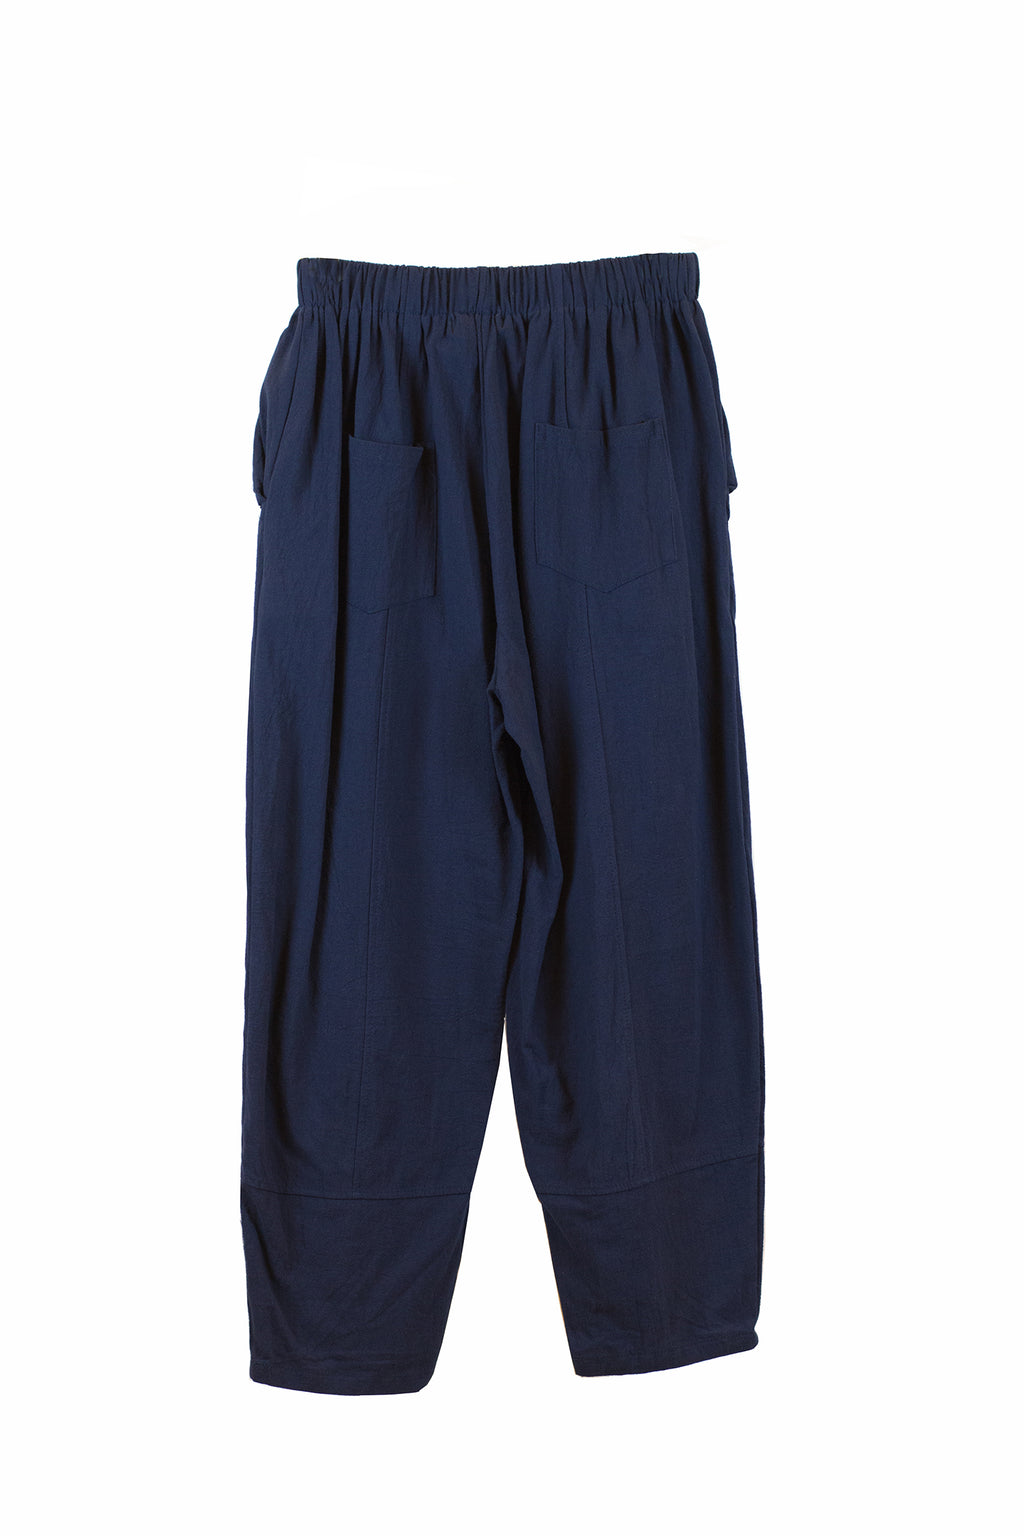 Navy blue square pants